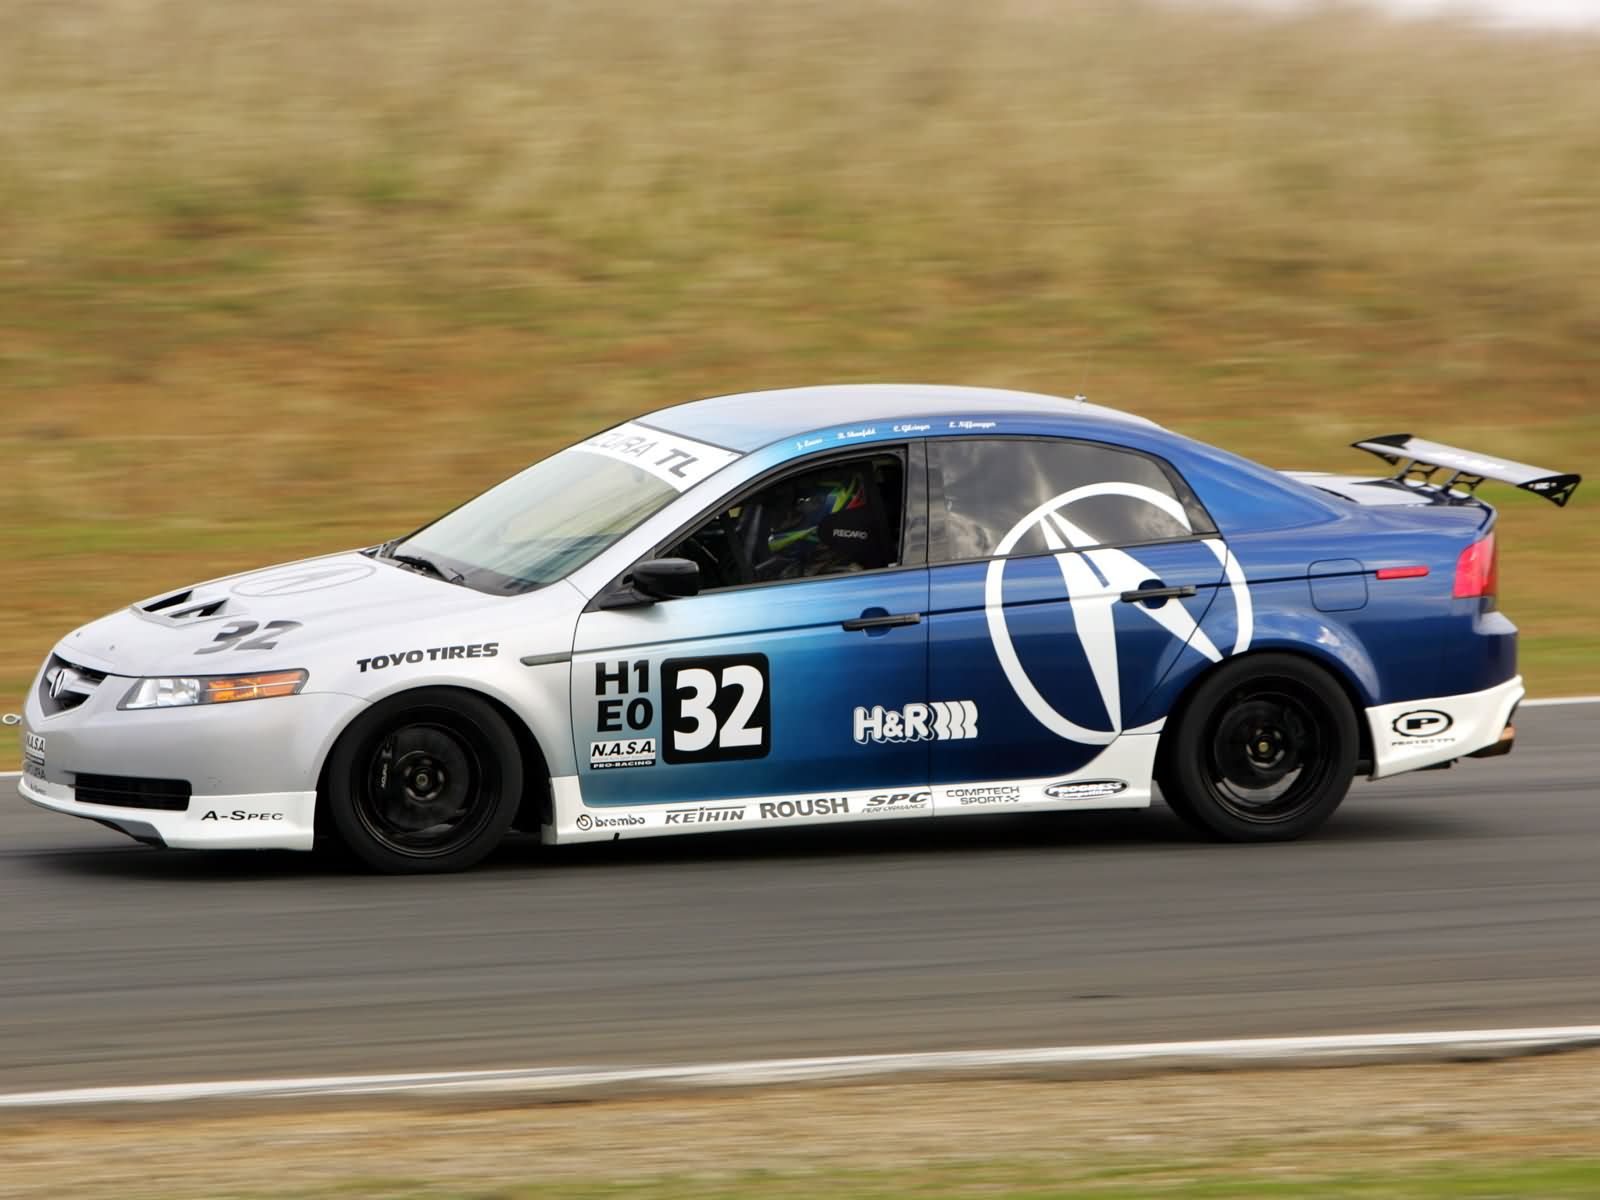 Acura TL 25 Hours of Thunderhill photo 17851